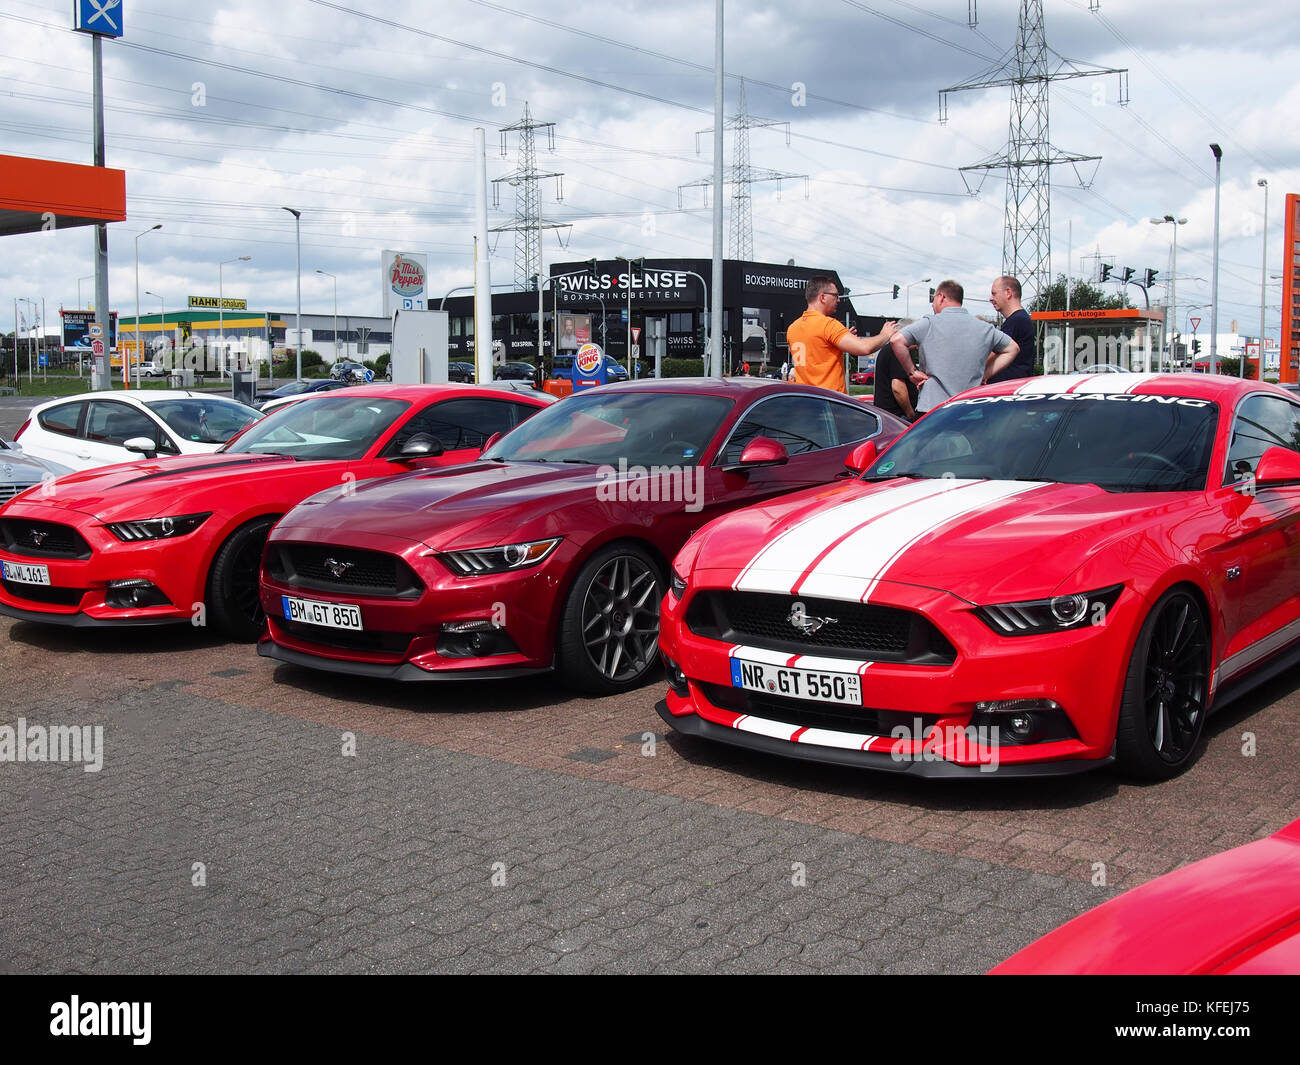 cologne ford stock photos cologne ford stock images alamy. Black Bedroom Furniture Sets. Home Design Ideas